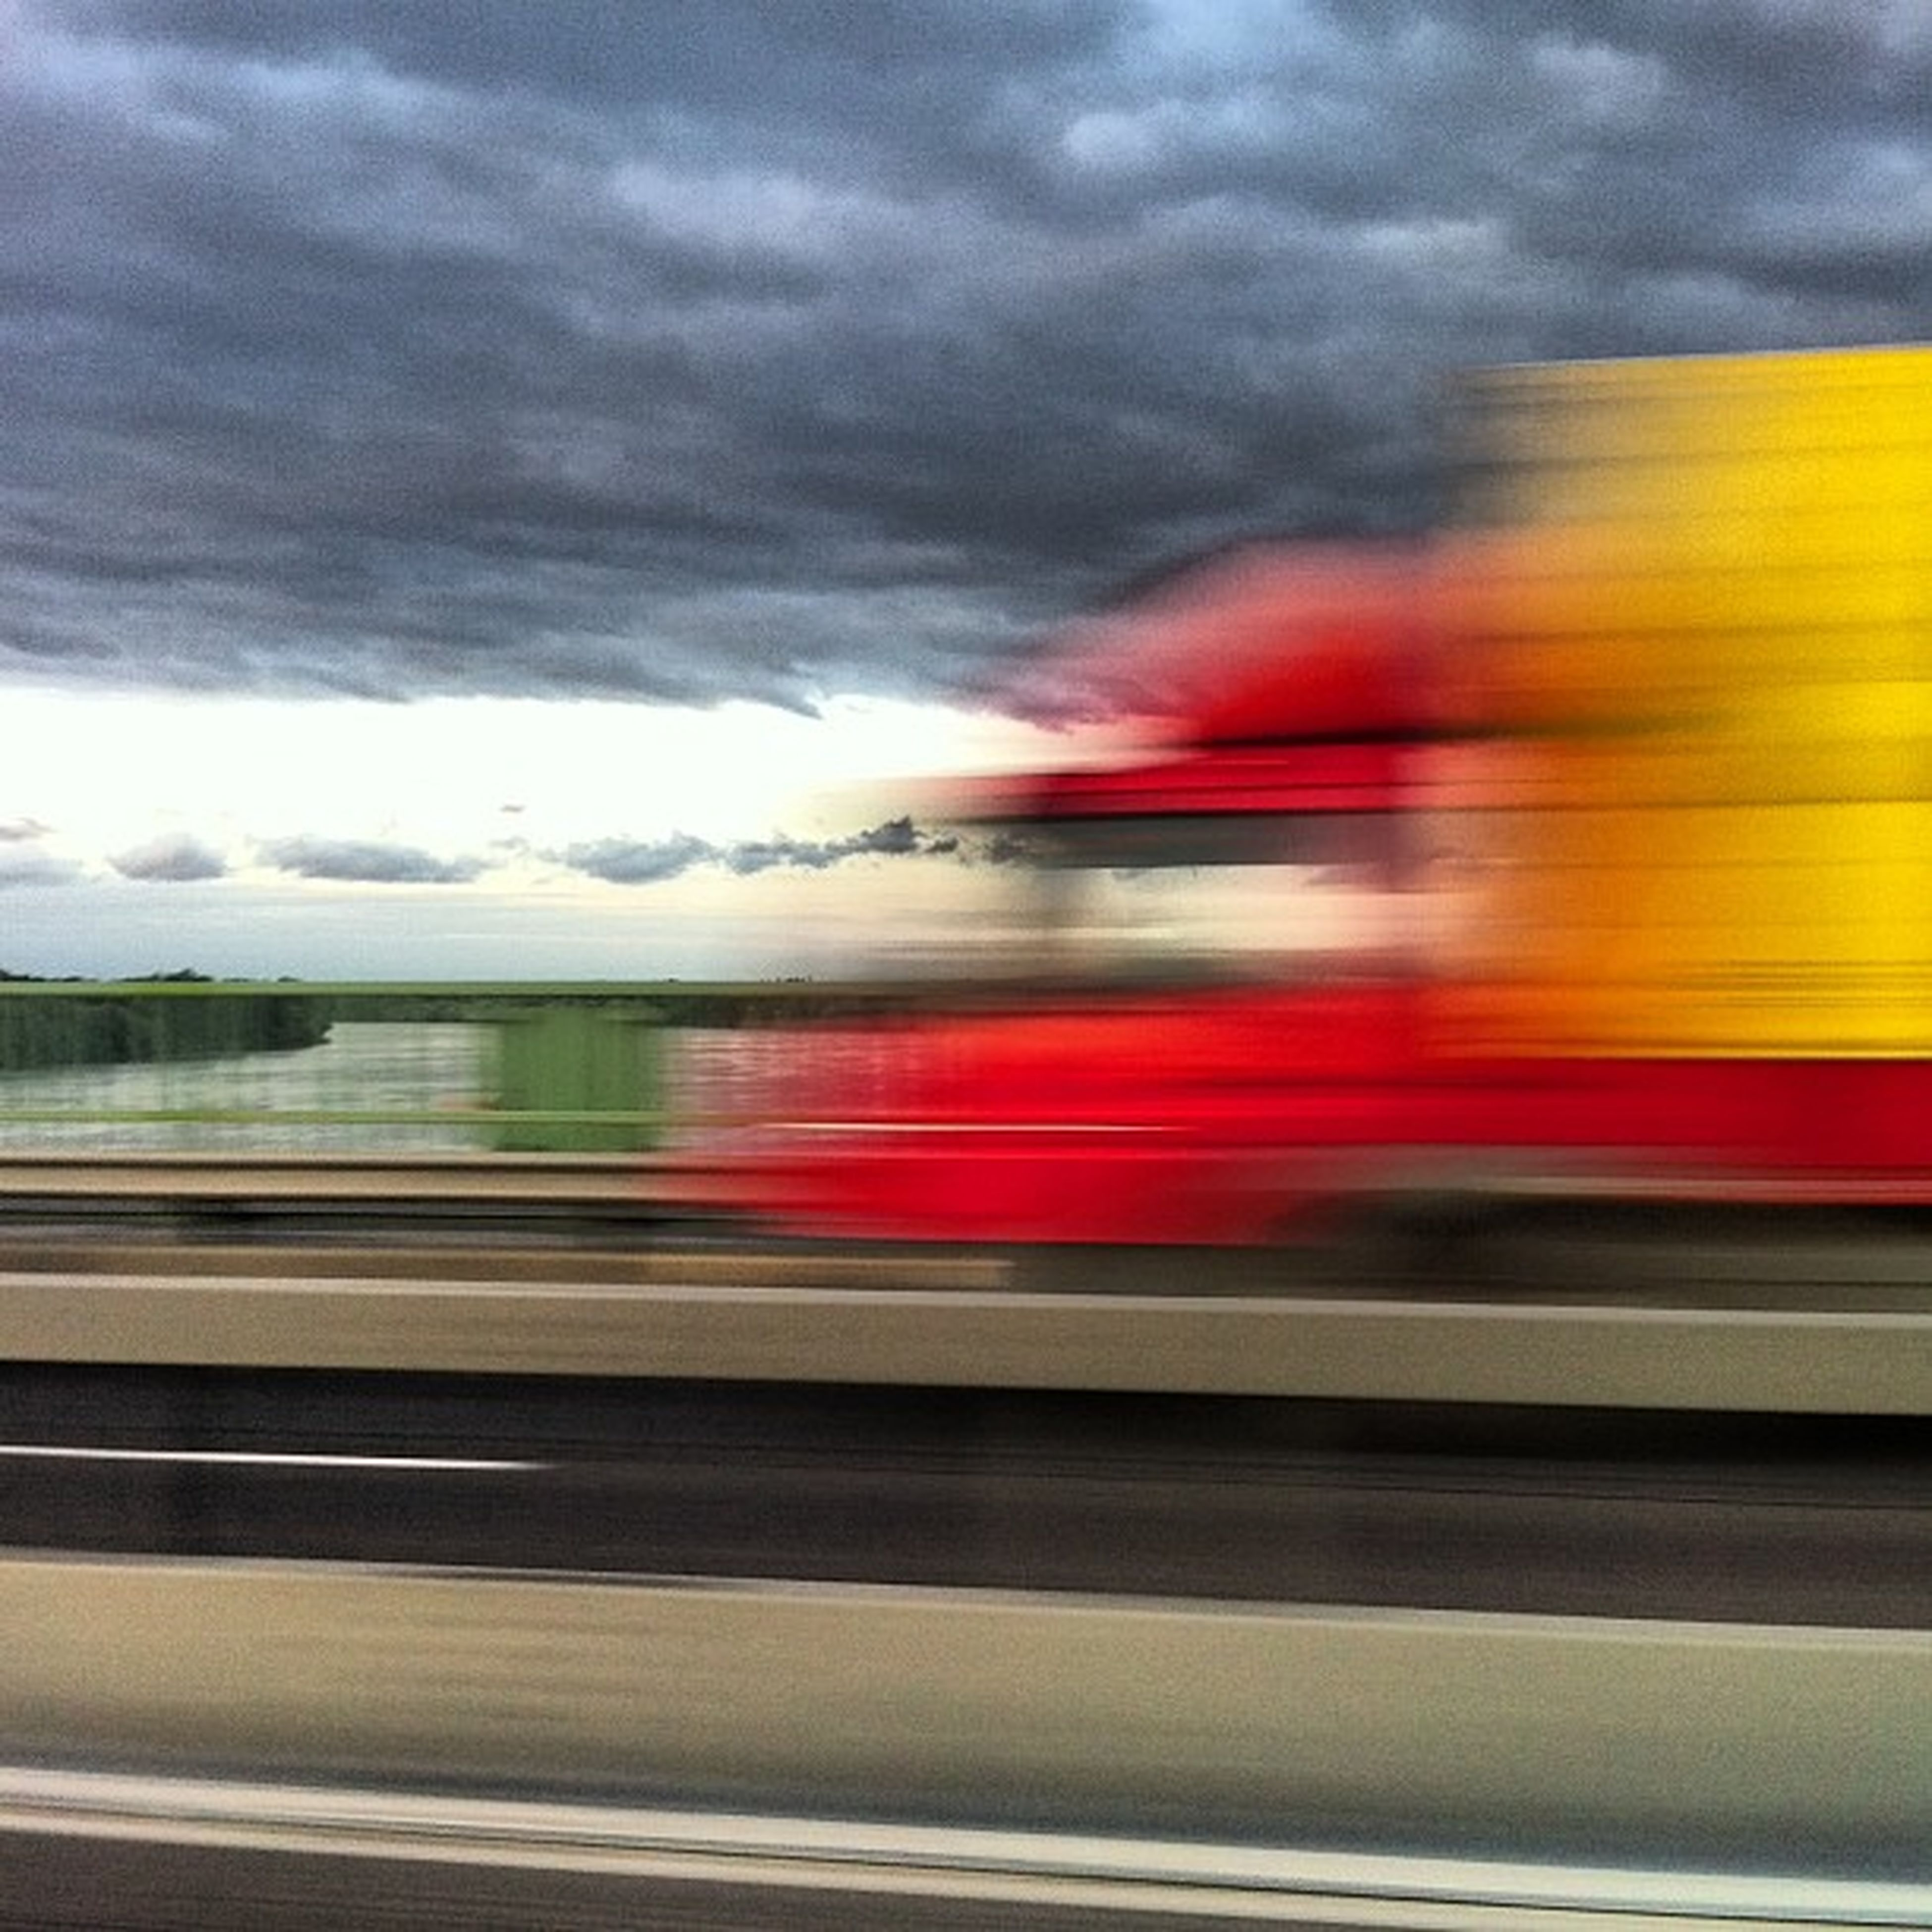 transportation, sky, cloud - sky, mode of transport, road, cloudy, motion, land vehicle, car, blurred motion, on the move, long exposure, speed, weather, travel, dramatic sky, sunset, cloud, road marking, overcast